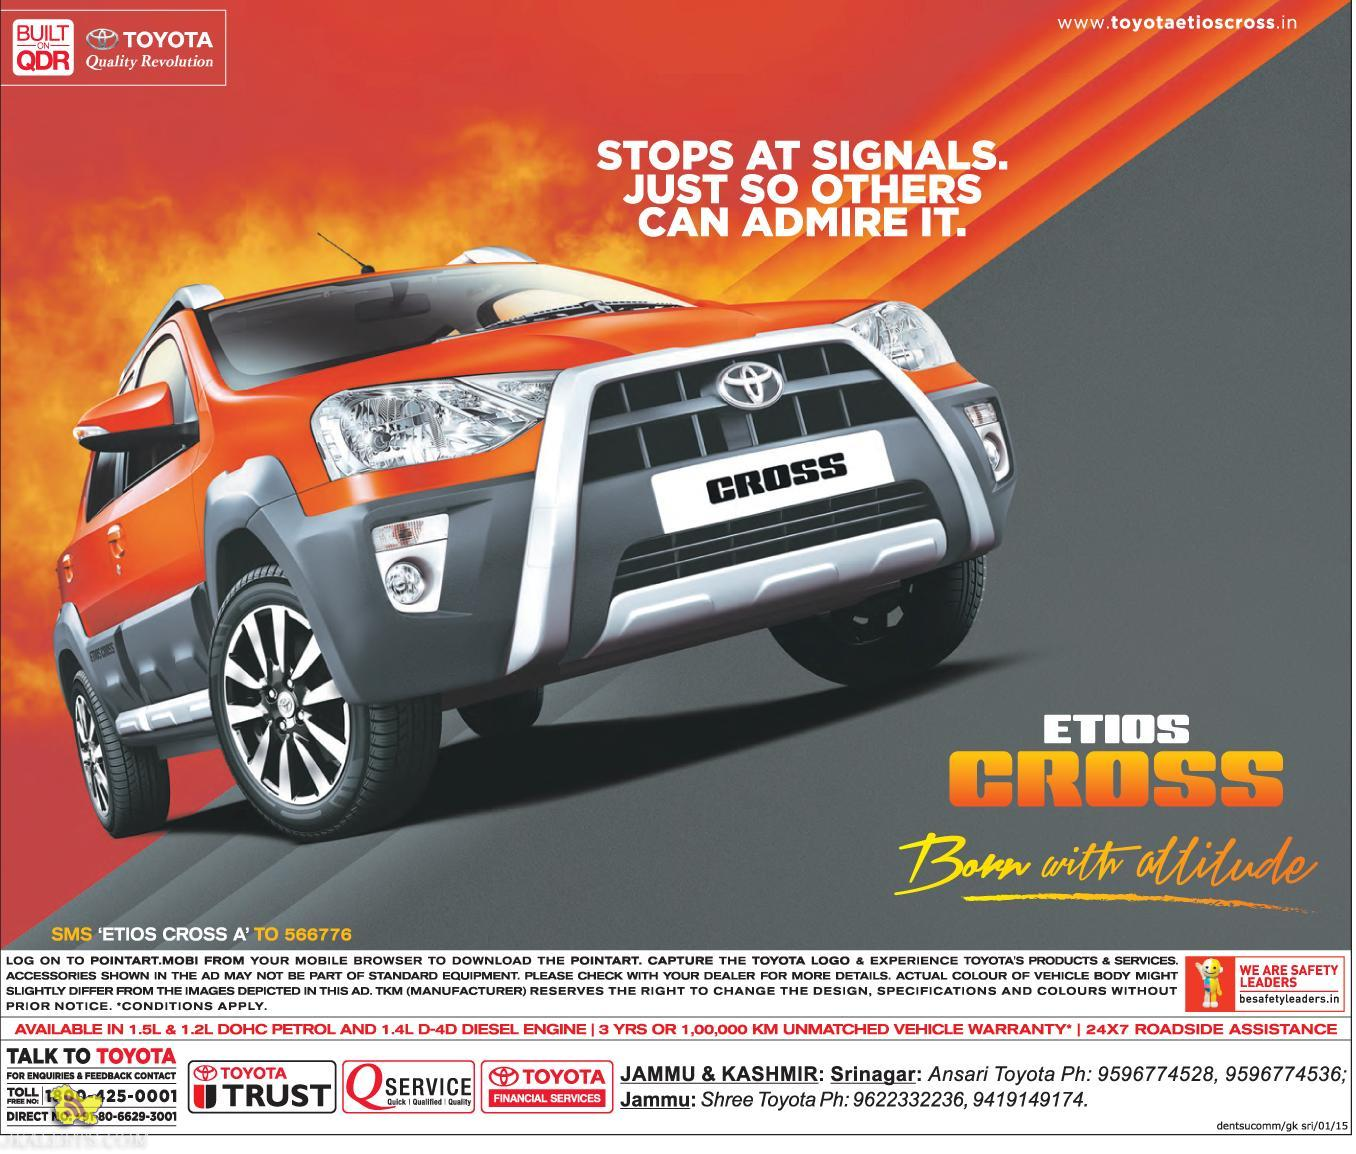 Etios Cross Toyota Dealers Jammu and Kashmir